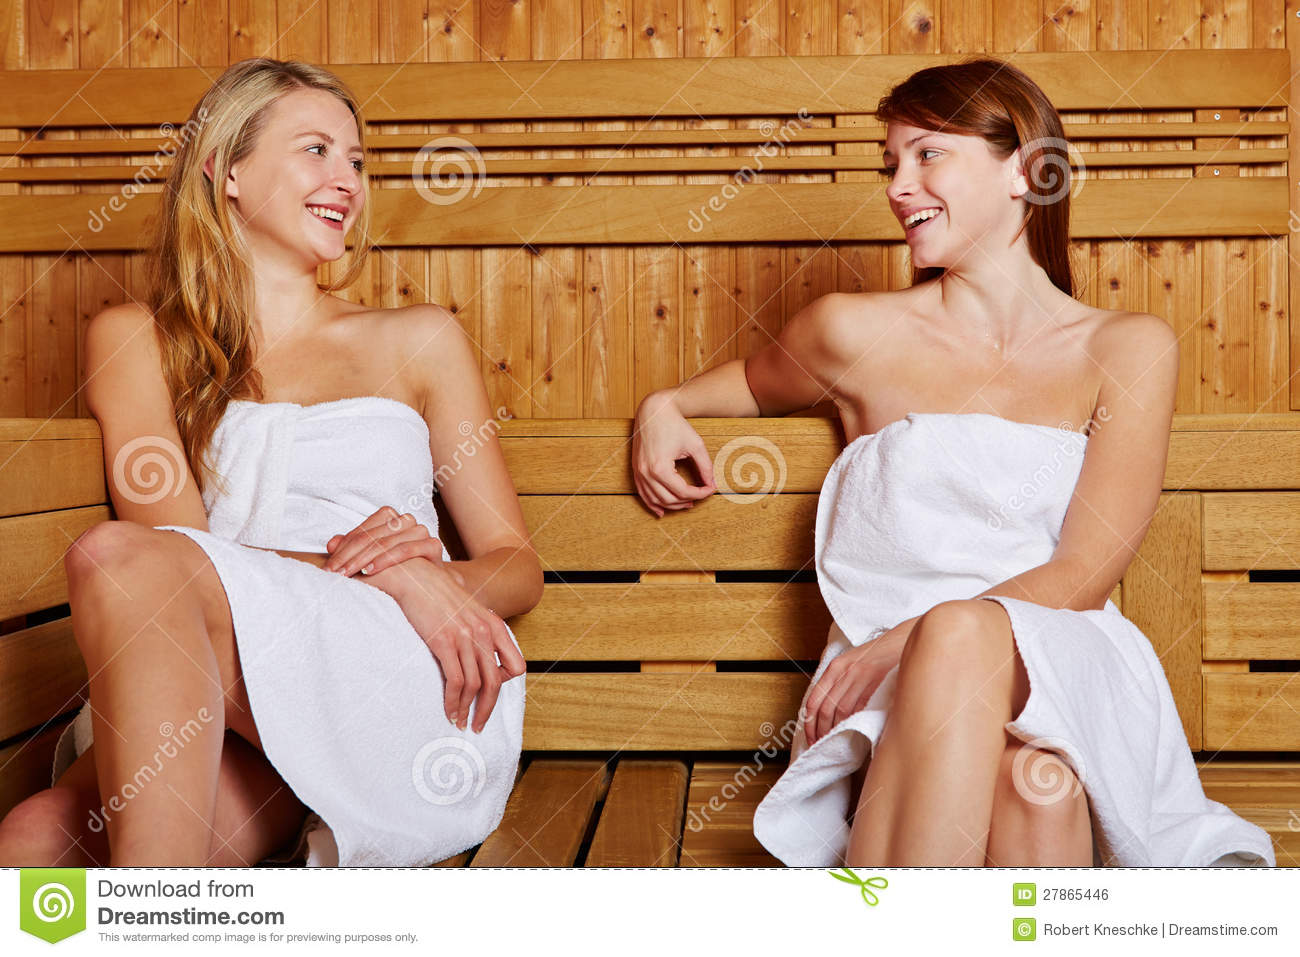 Two Women Sitting Sauna Stock Images - Download 199 Royalty Free Photos fd10e43f9